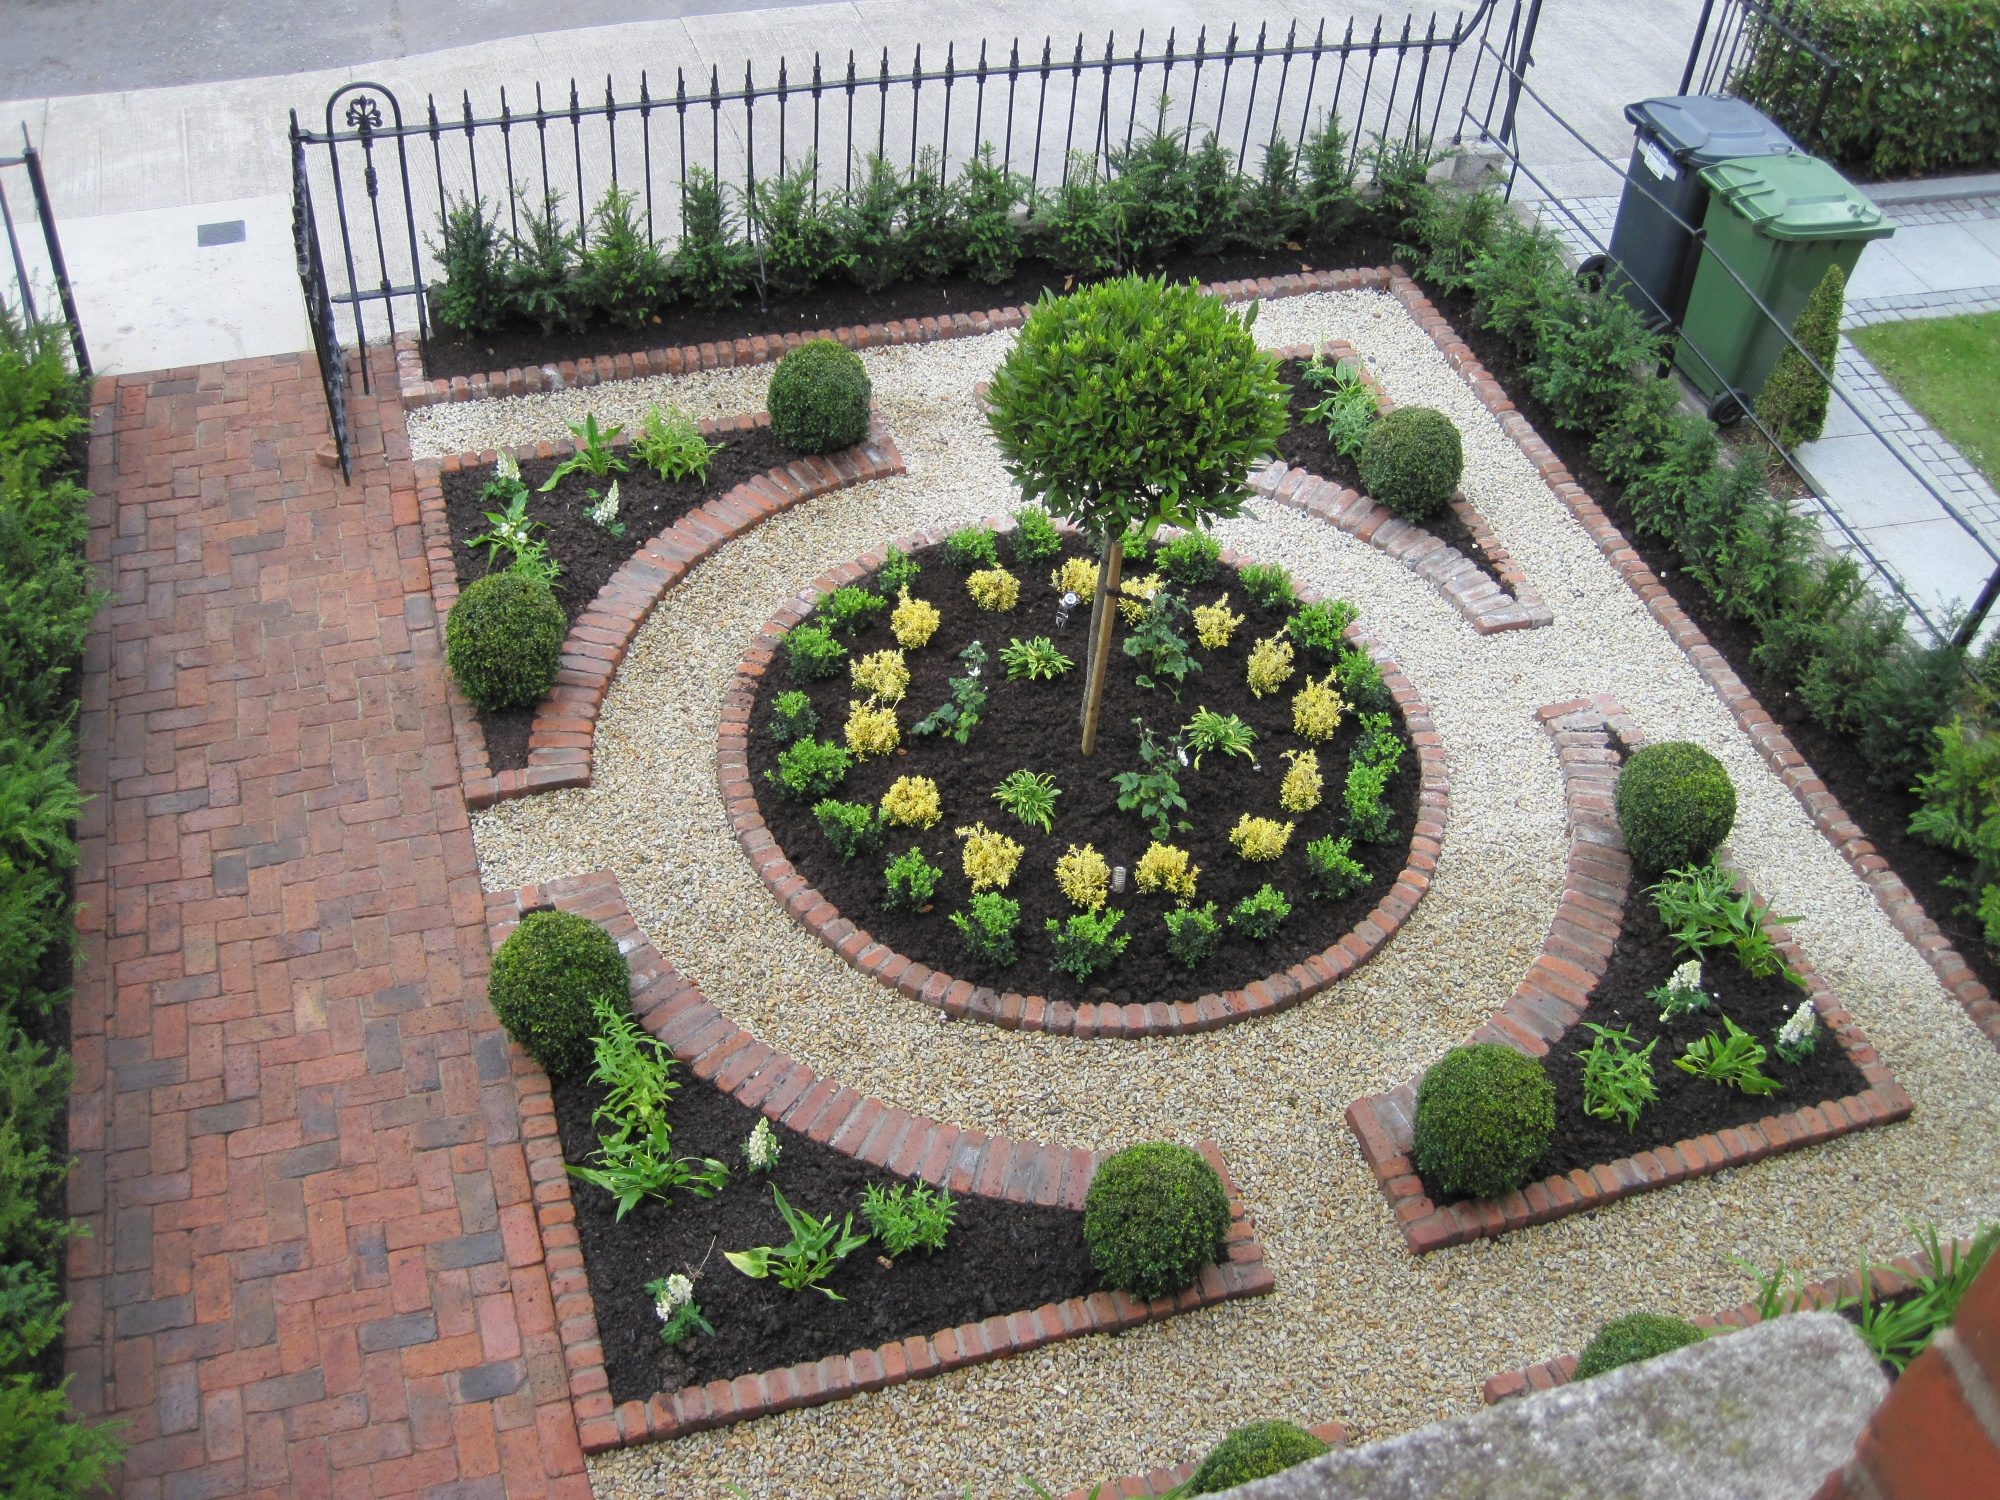 Garden design ideas inspiration advice for all styles for Front garden ideas